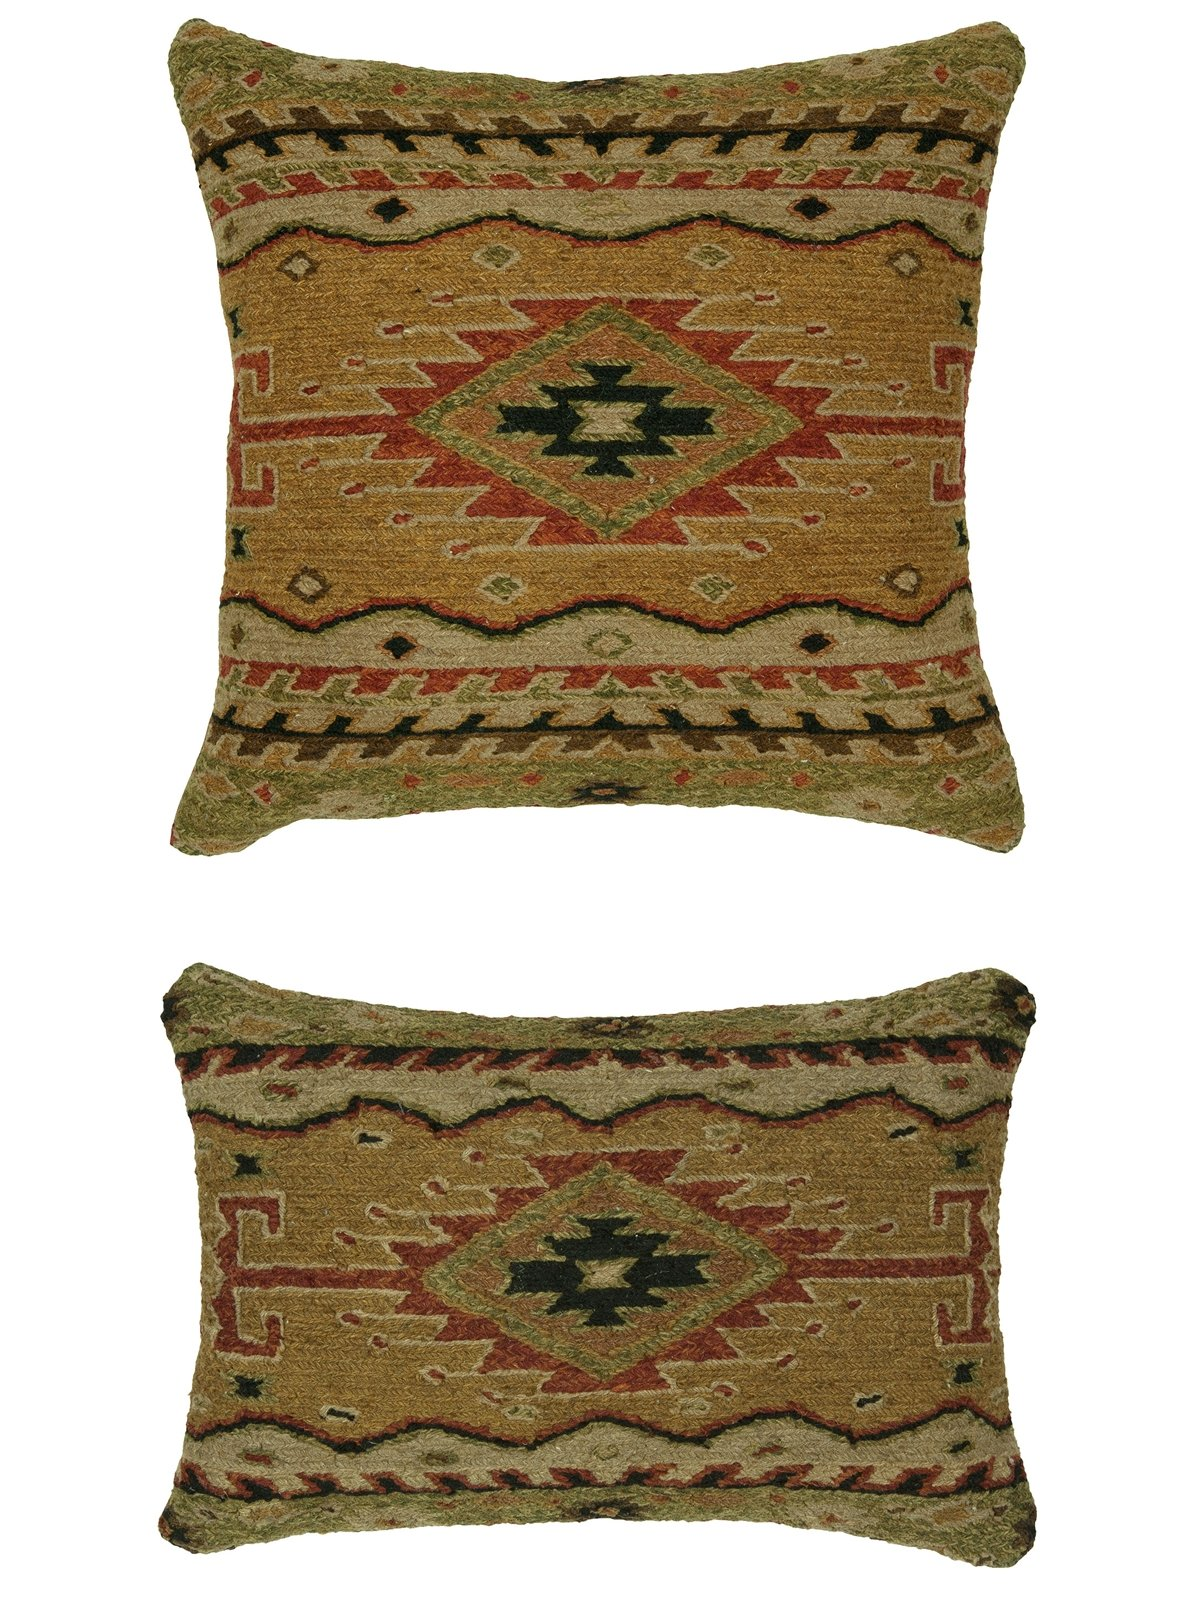 Pillow PL-221 Earth Tones - AllRugs